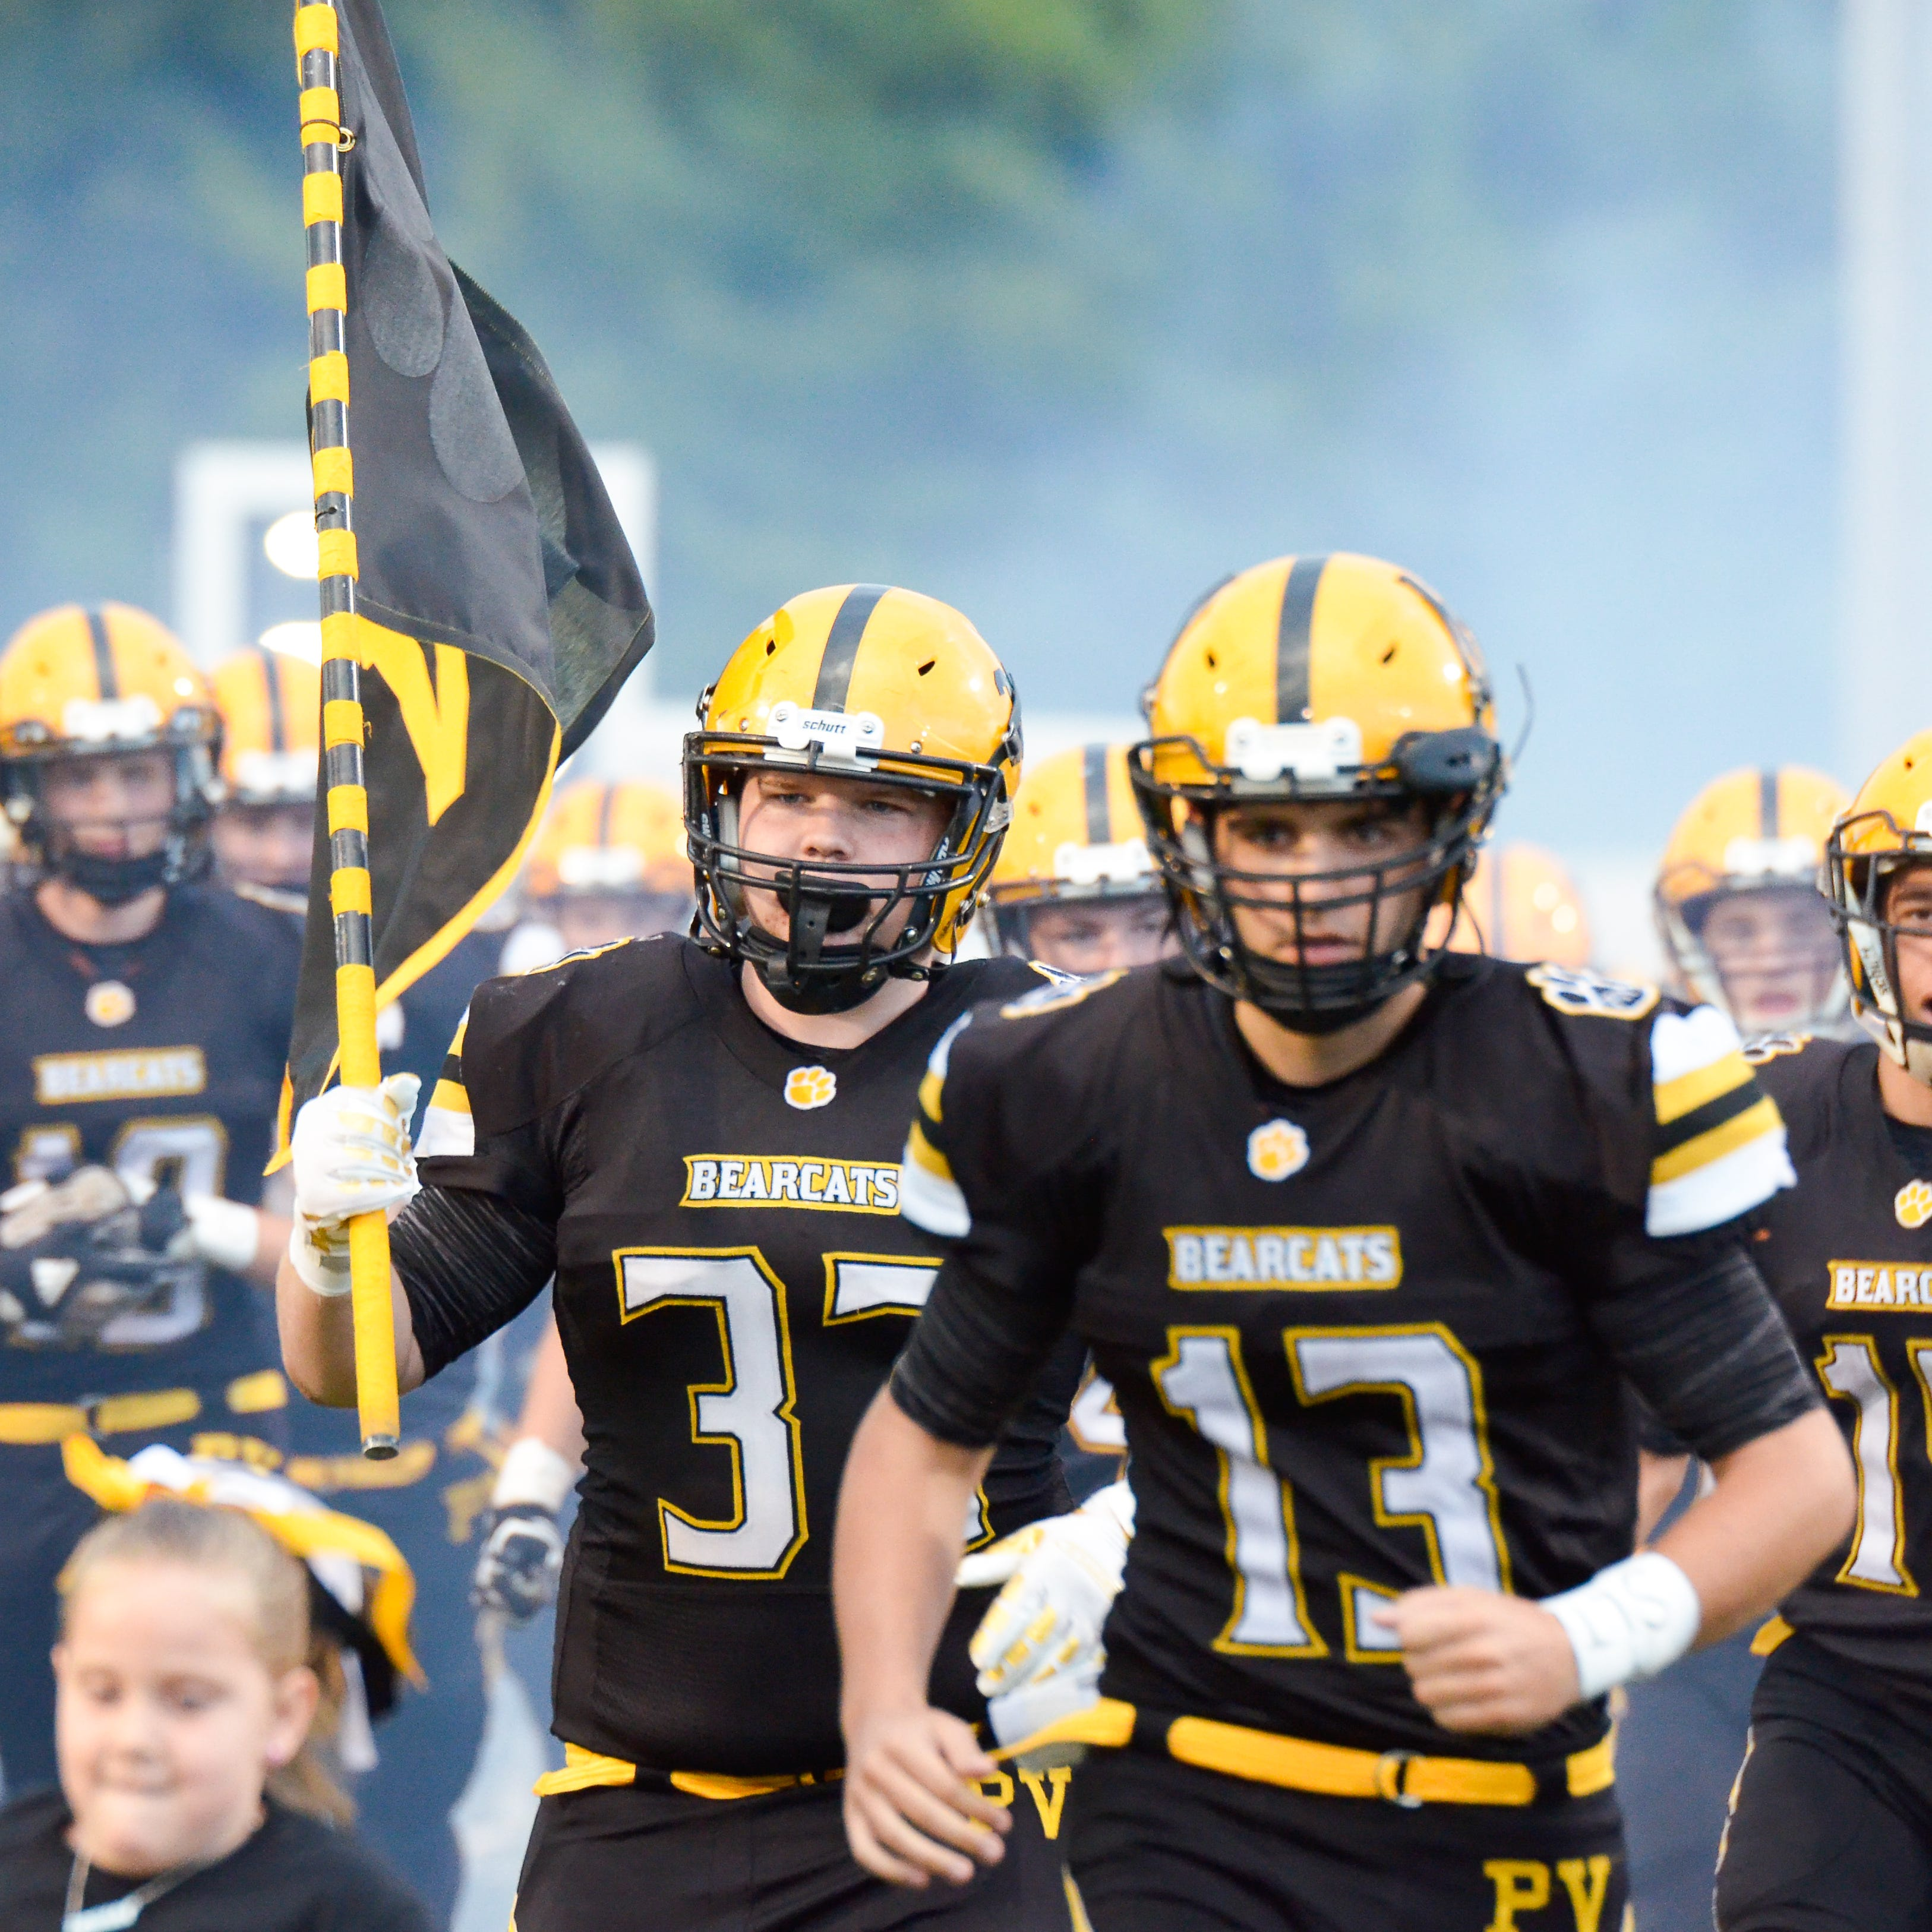 OHIO HS FOOTBALL: Four things to know about Southeastern's, Paint Valley's SVC matchup